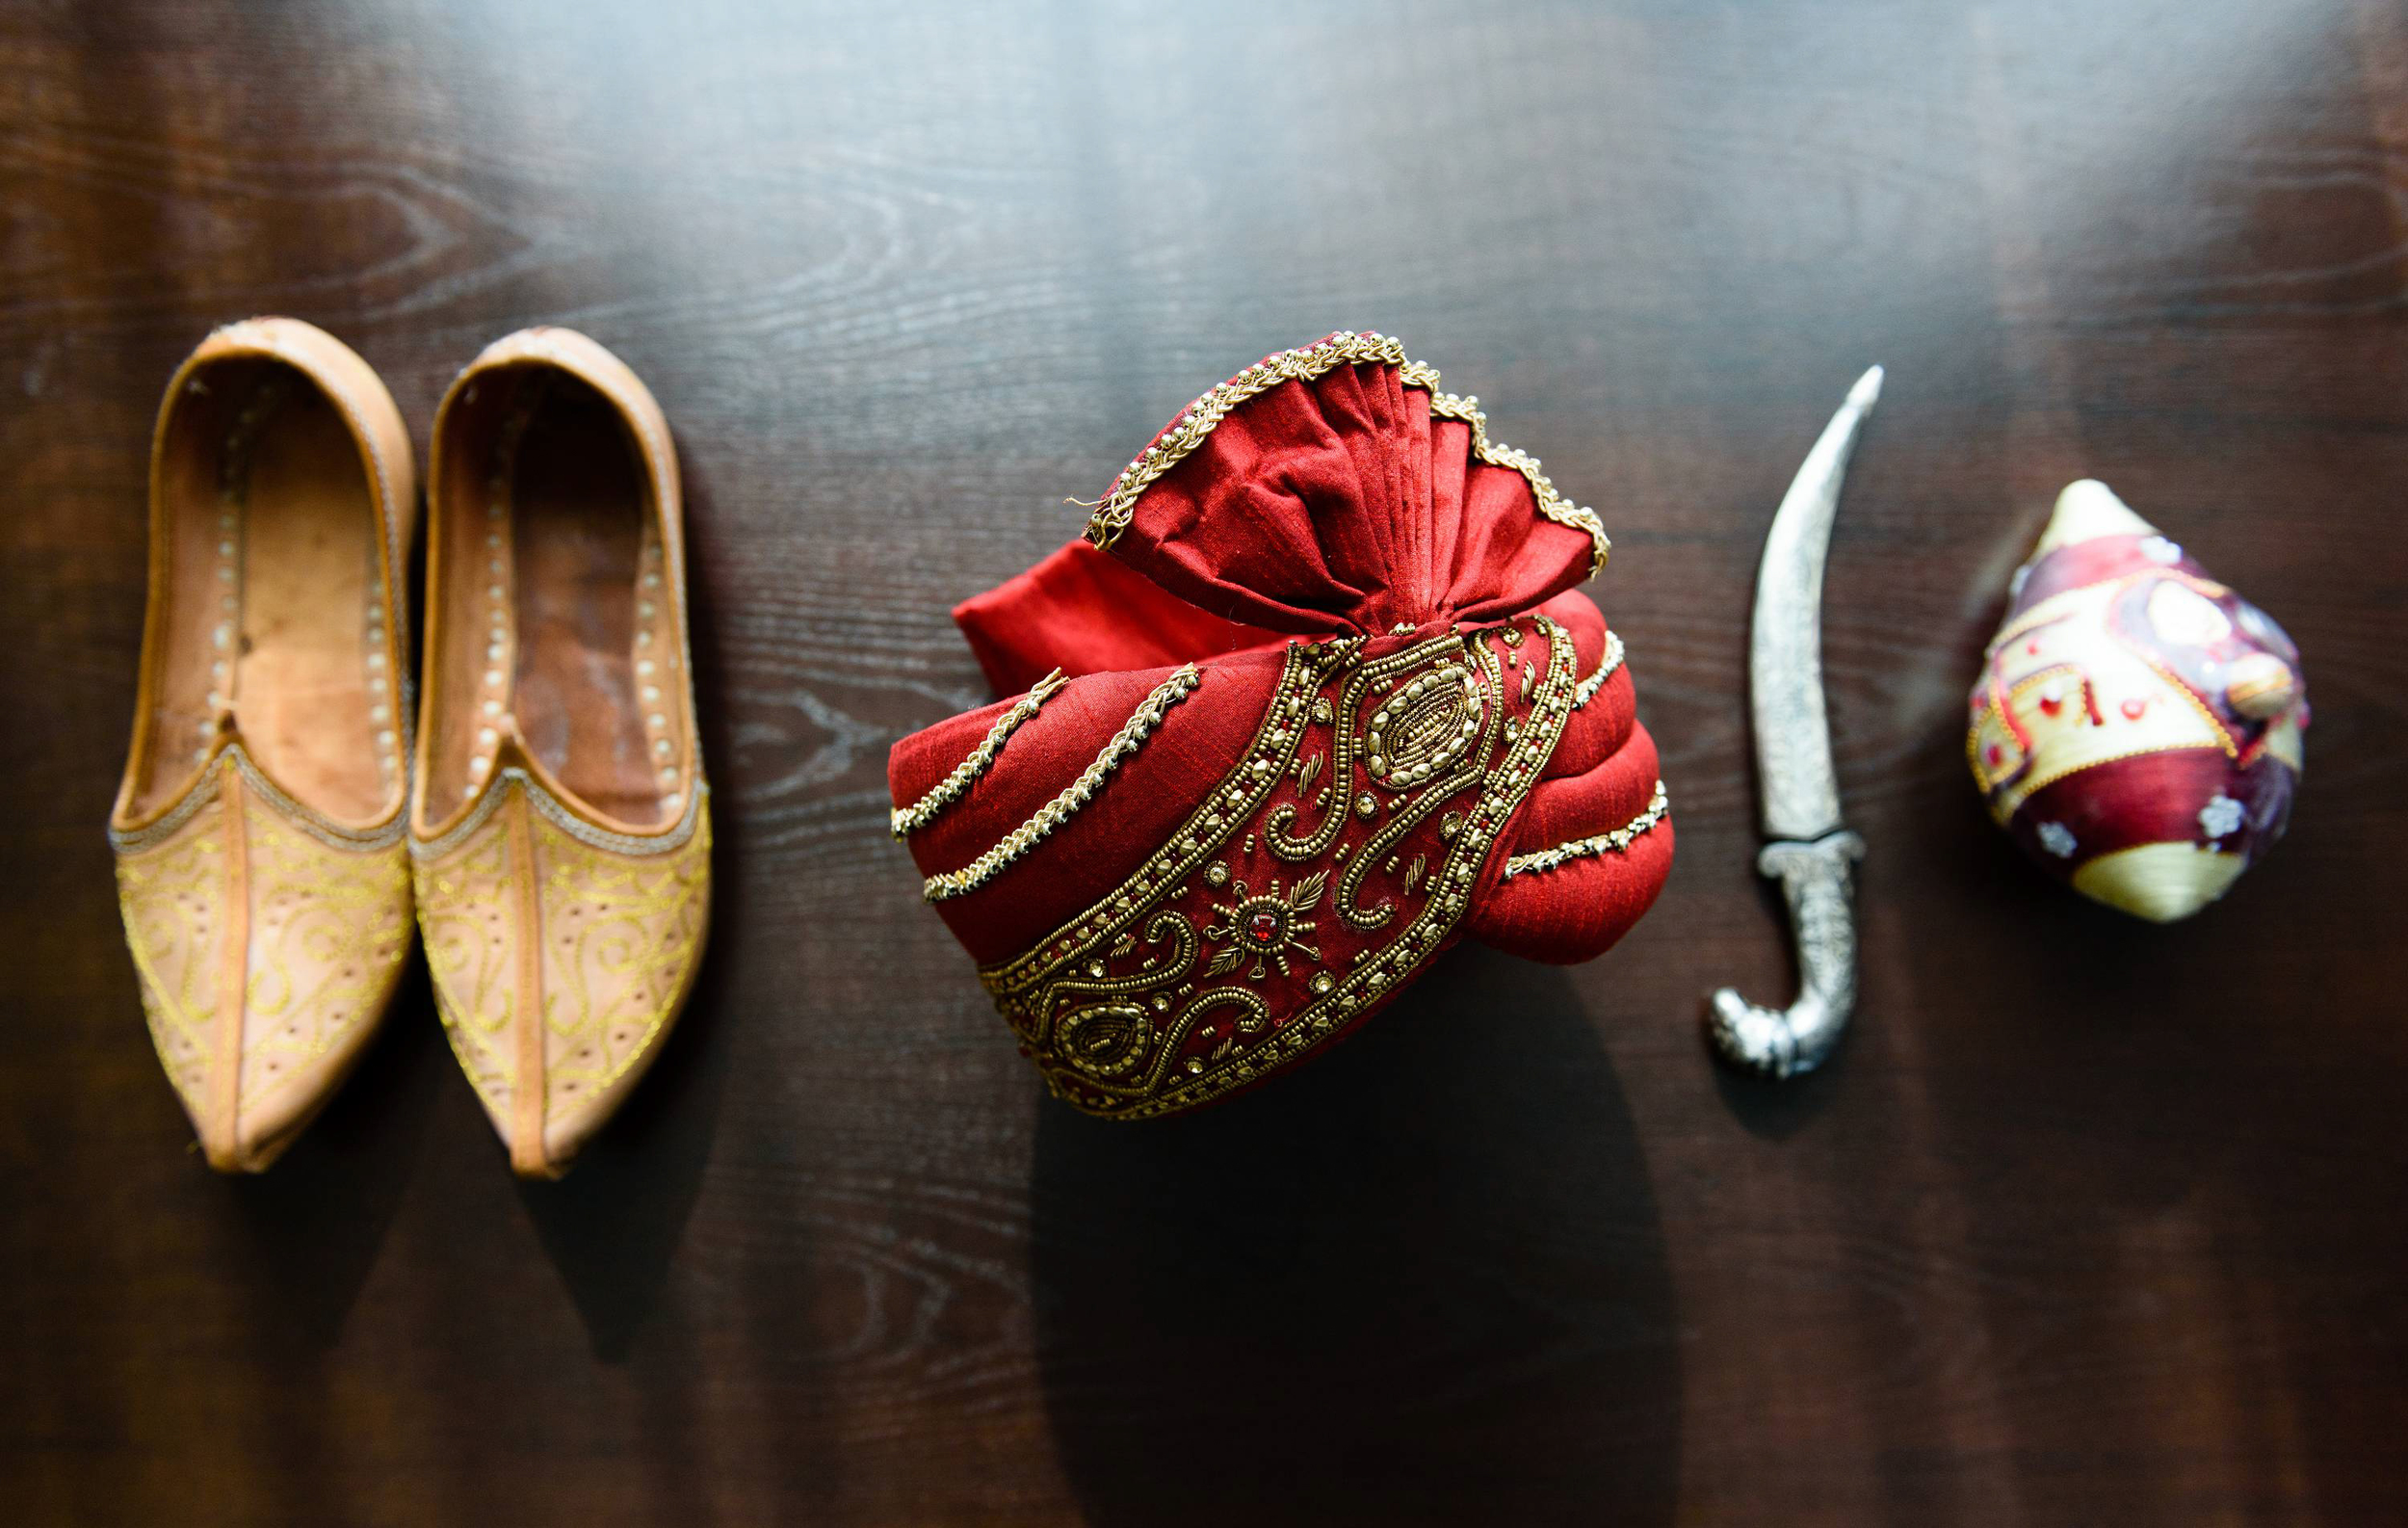 traditional indian wedding shoes for groom & accessories such as safa or sapaa, decorative coconut and khanjar/dagger.